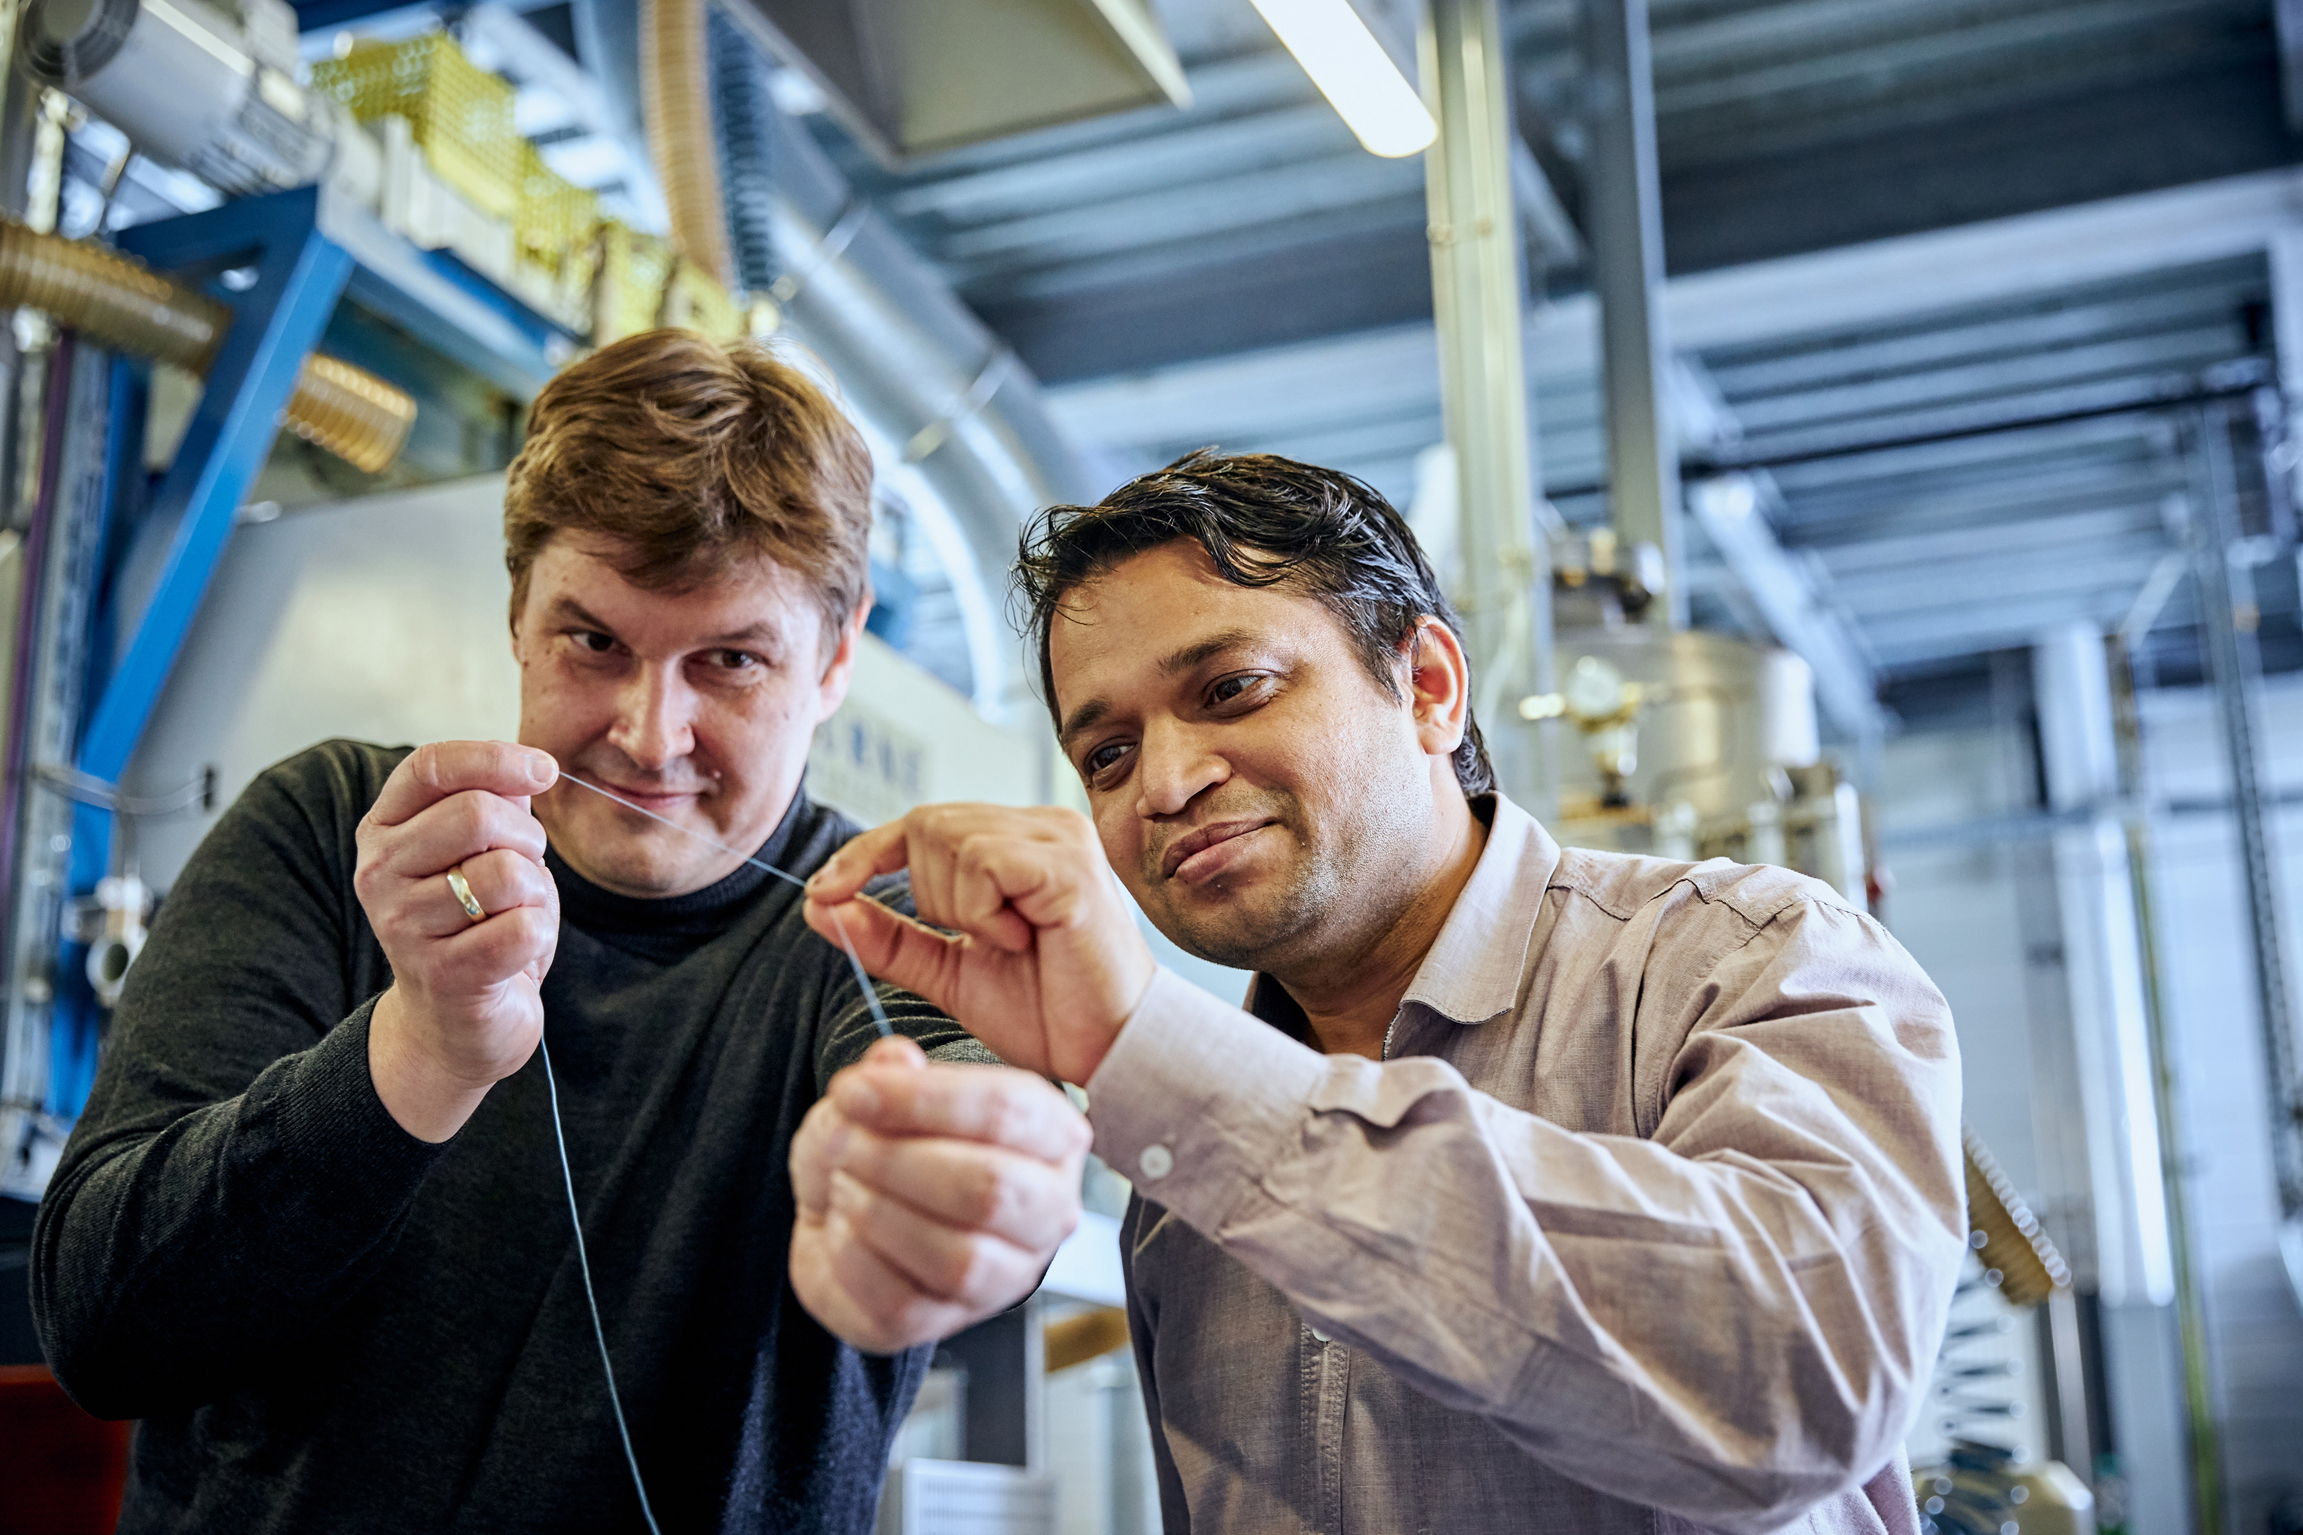 Scientist Pavan Manvi from RWTH Aachen University (right) and Covestro researcher Dr. Jochen Norwig holding a synthetic fibre prototype made from CO2. (Source: Covestro)